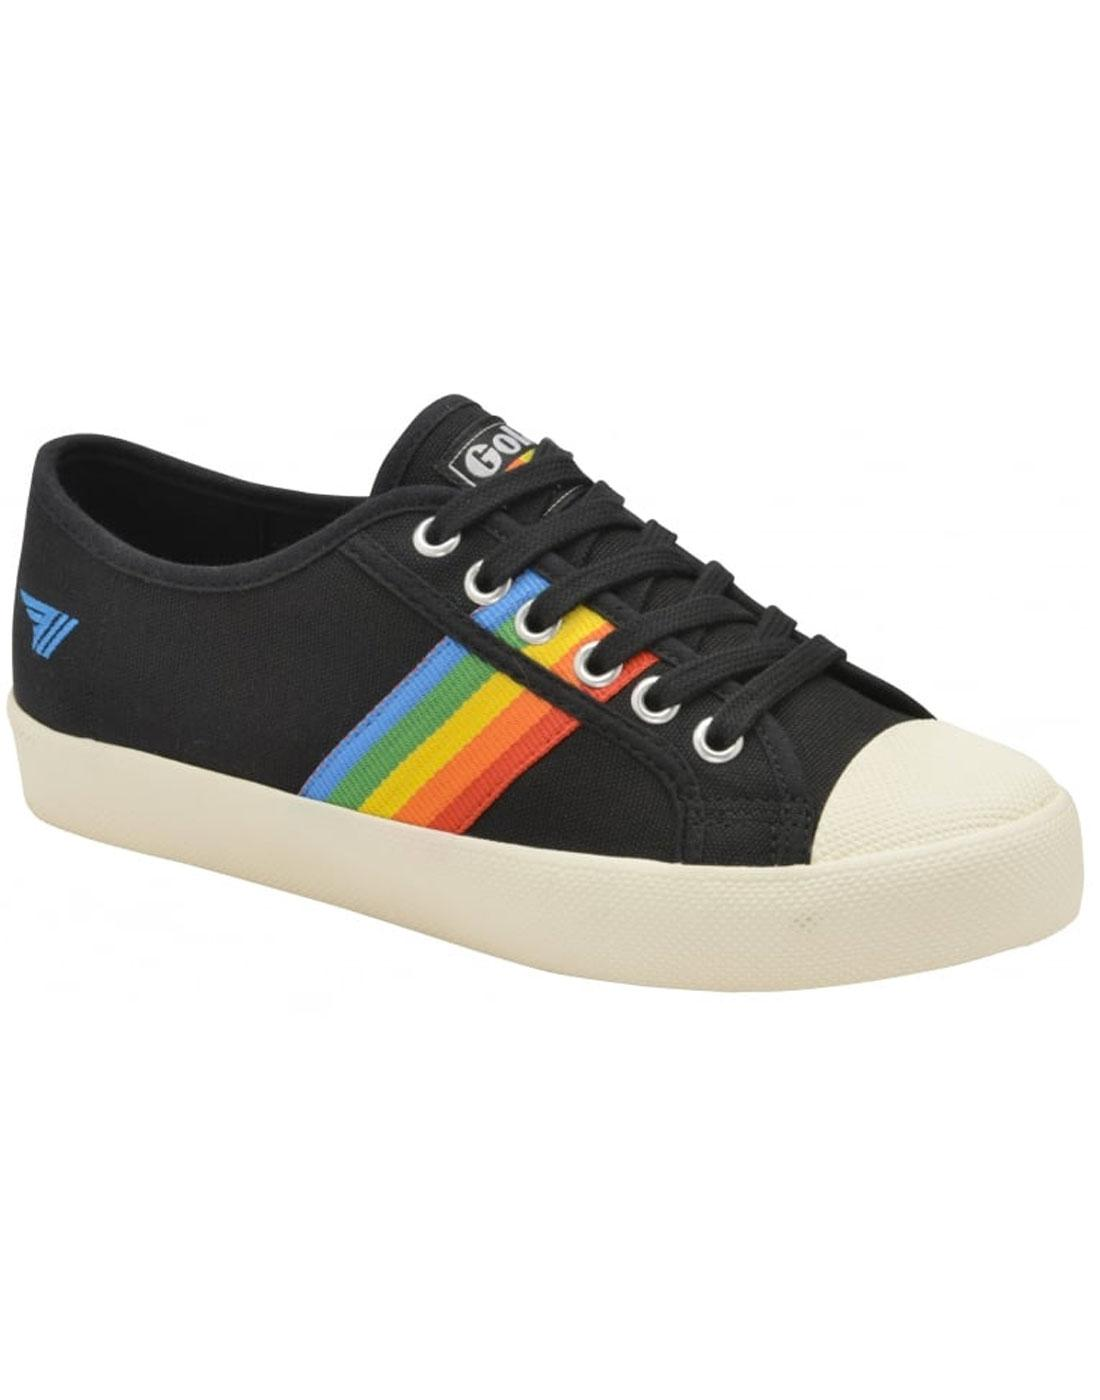 Coaster Rainbow GOLA Retro 1990s Canvas Trainers B